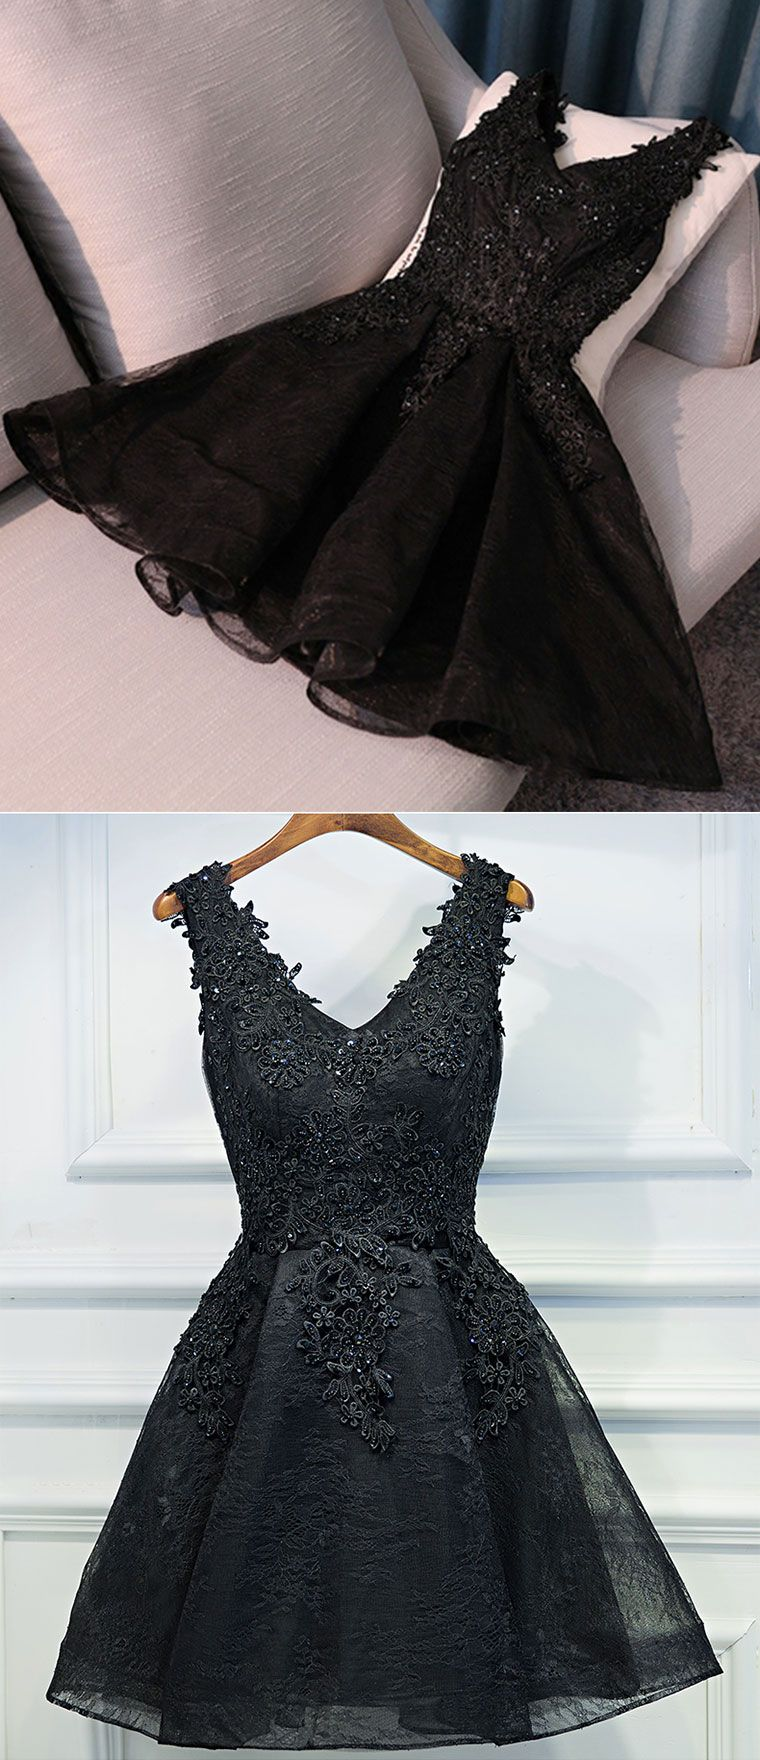 Of girl black v neck lace short prom dress lace evening dresss